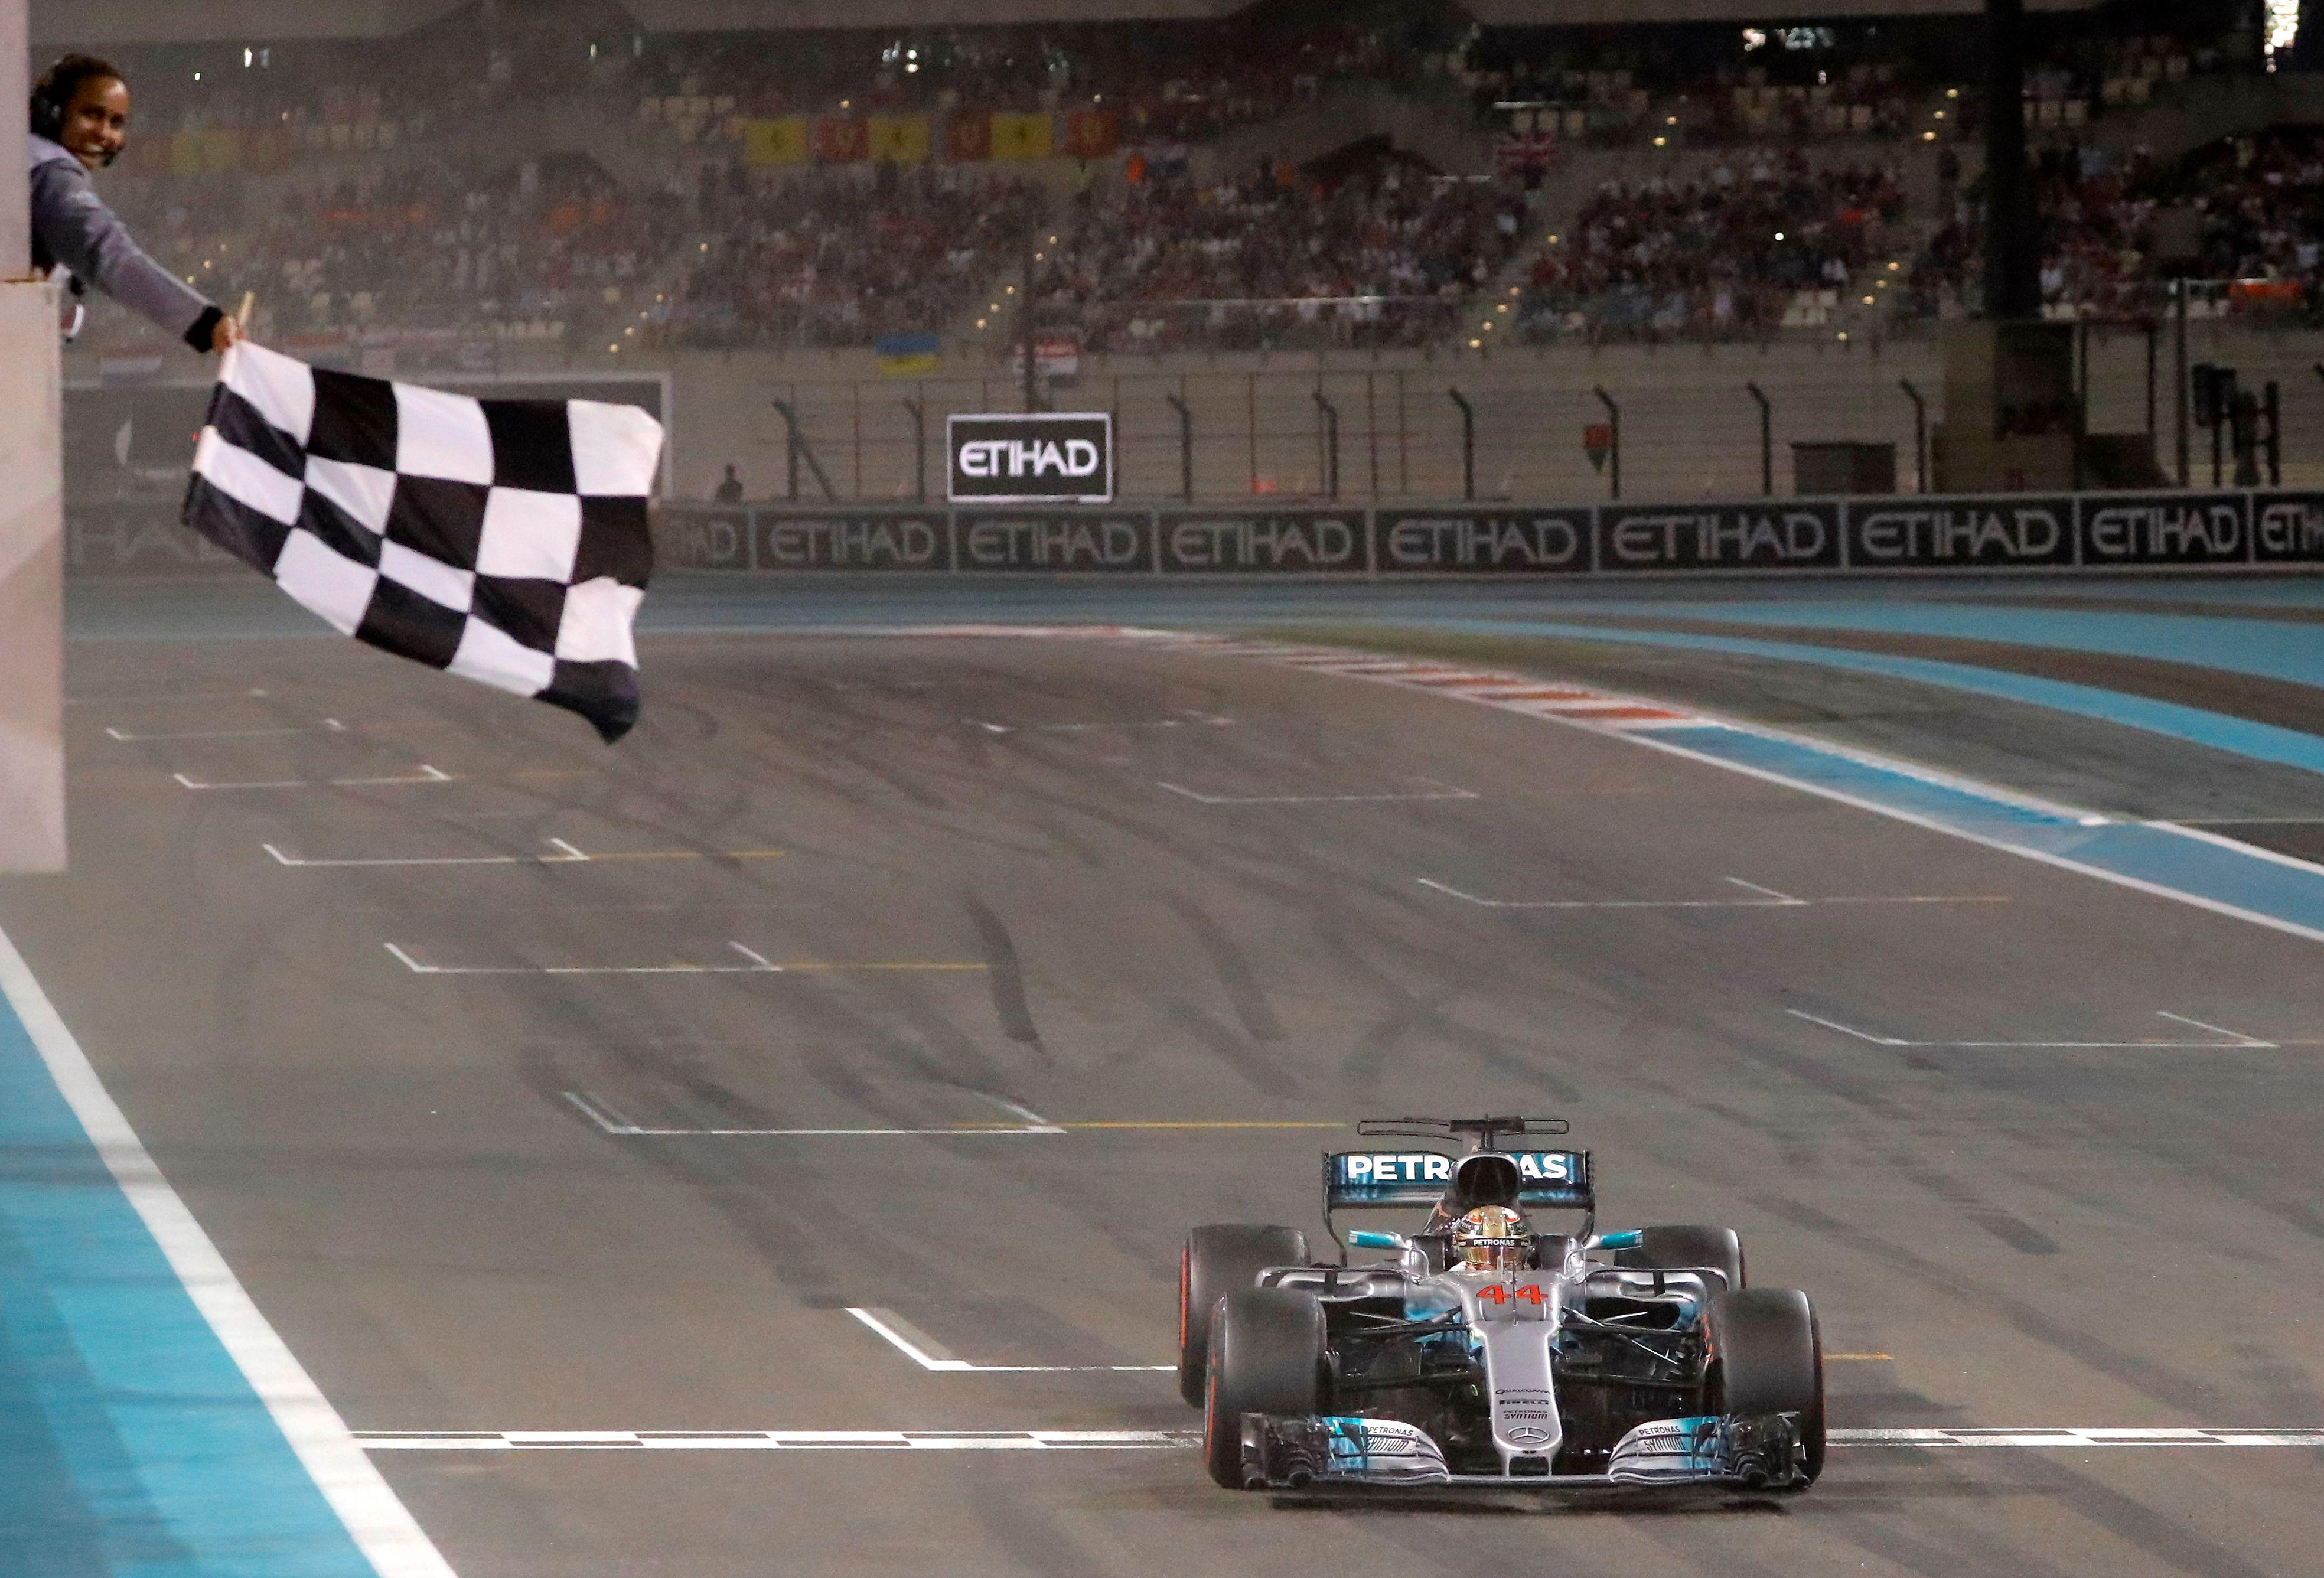 The chequered flag has been a long standing tradition to end Formula One races